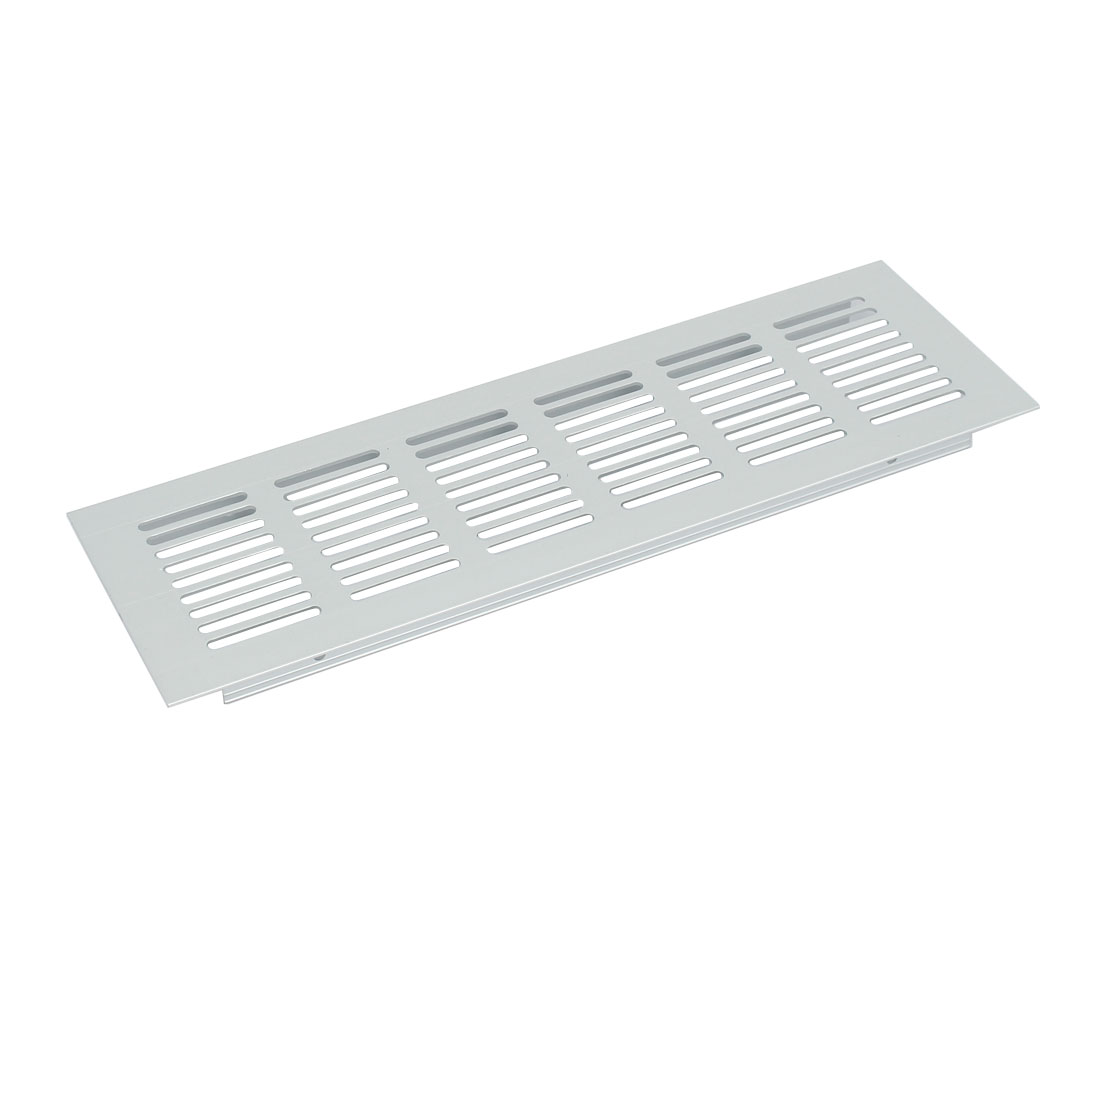 Aluminum Alloy Air Vent Louvered Grill Cover Ventilation Grille 250mmx80mm